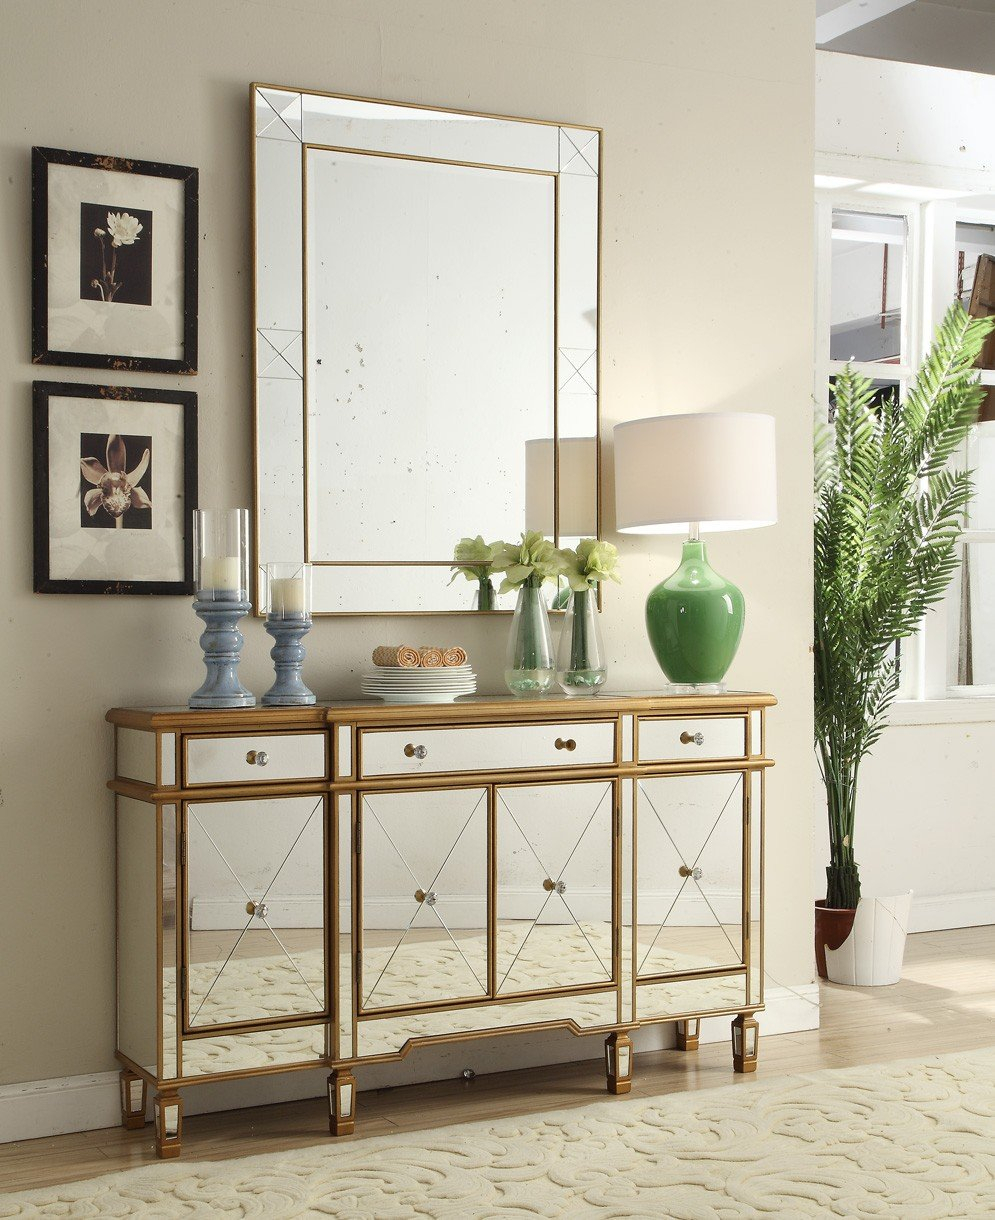 Sideboard Imperial Mit Spiegel Regarding Most Recent Sideboards By Wildon Home (#8 of 20)